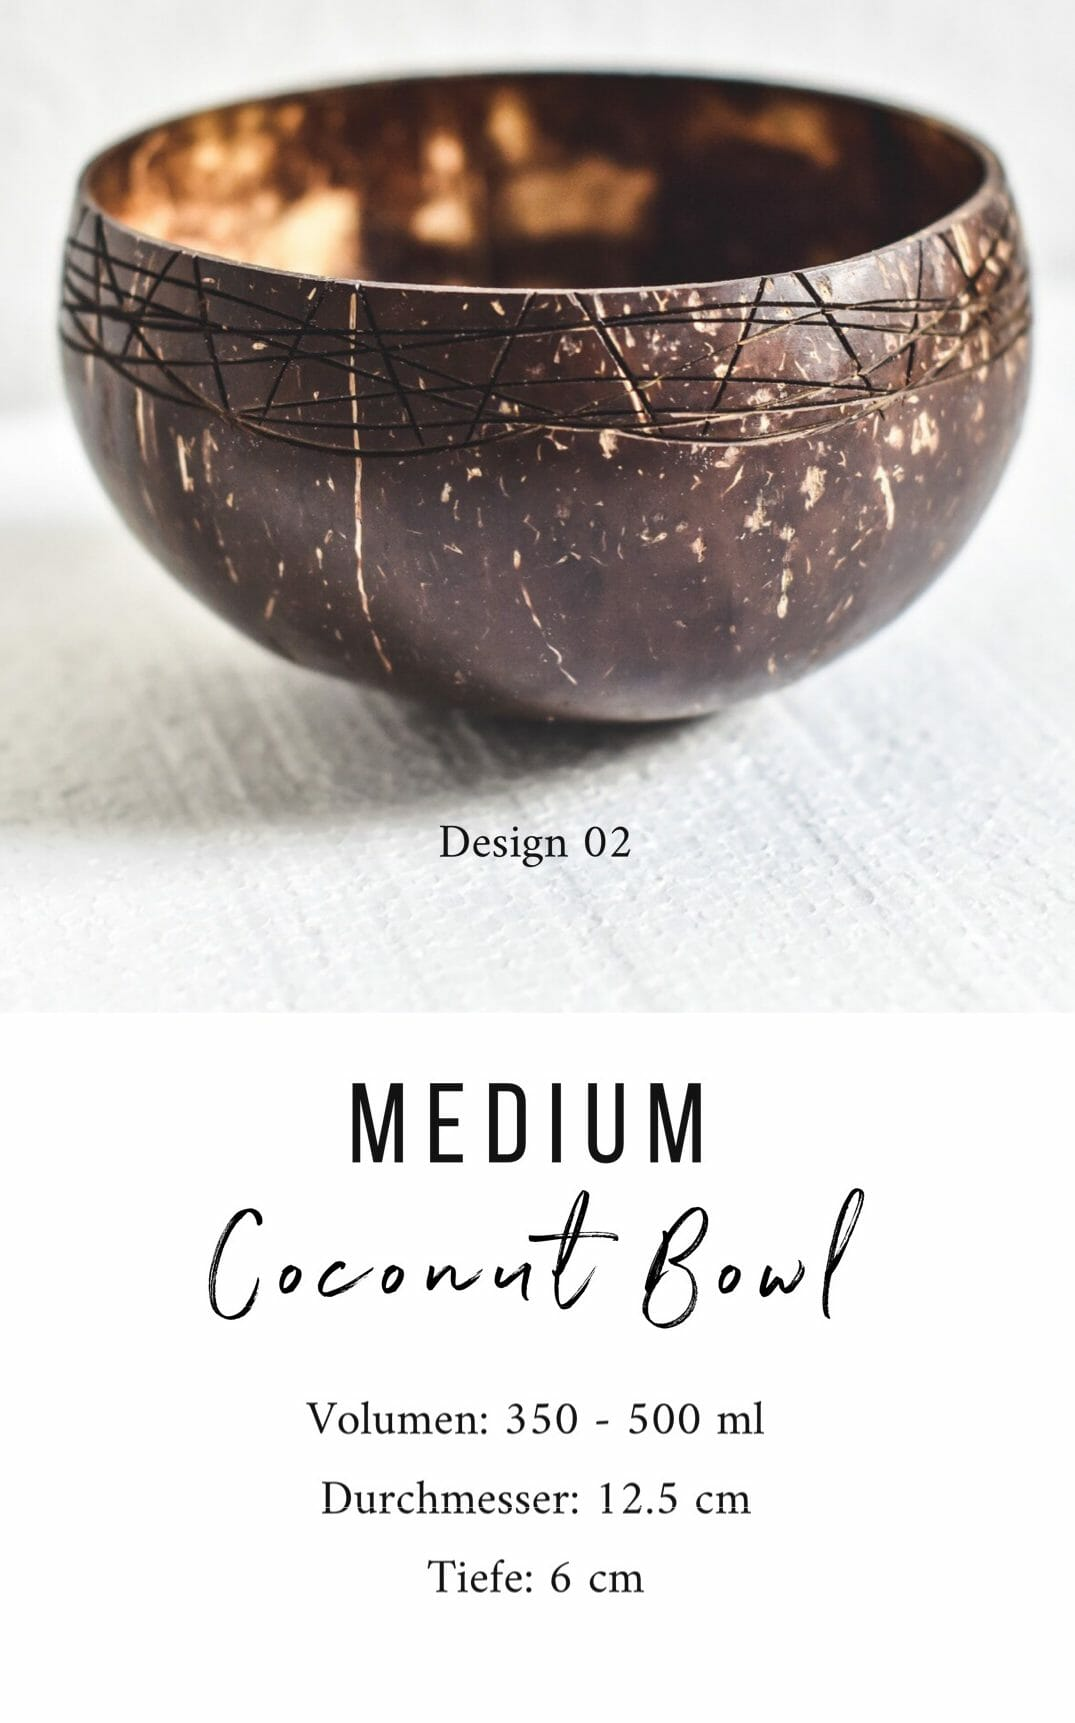 Medium Coconut Bowl 02